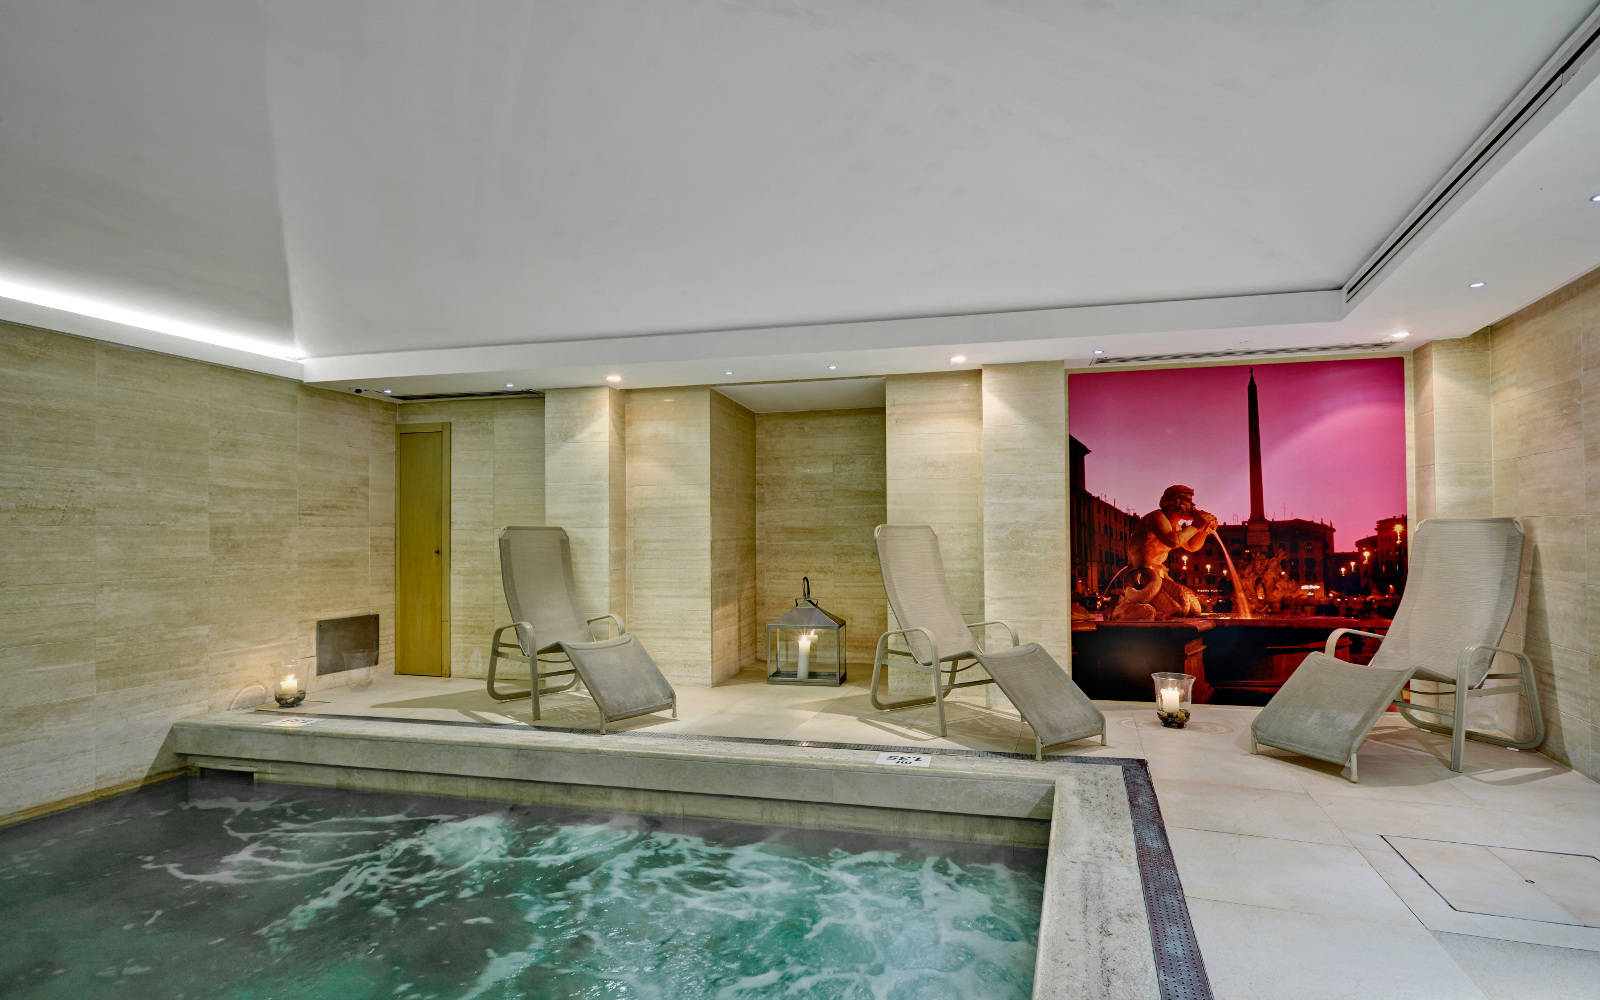 St. George Spa: Vasca Whirlpool